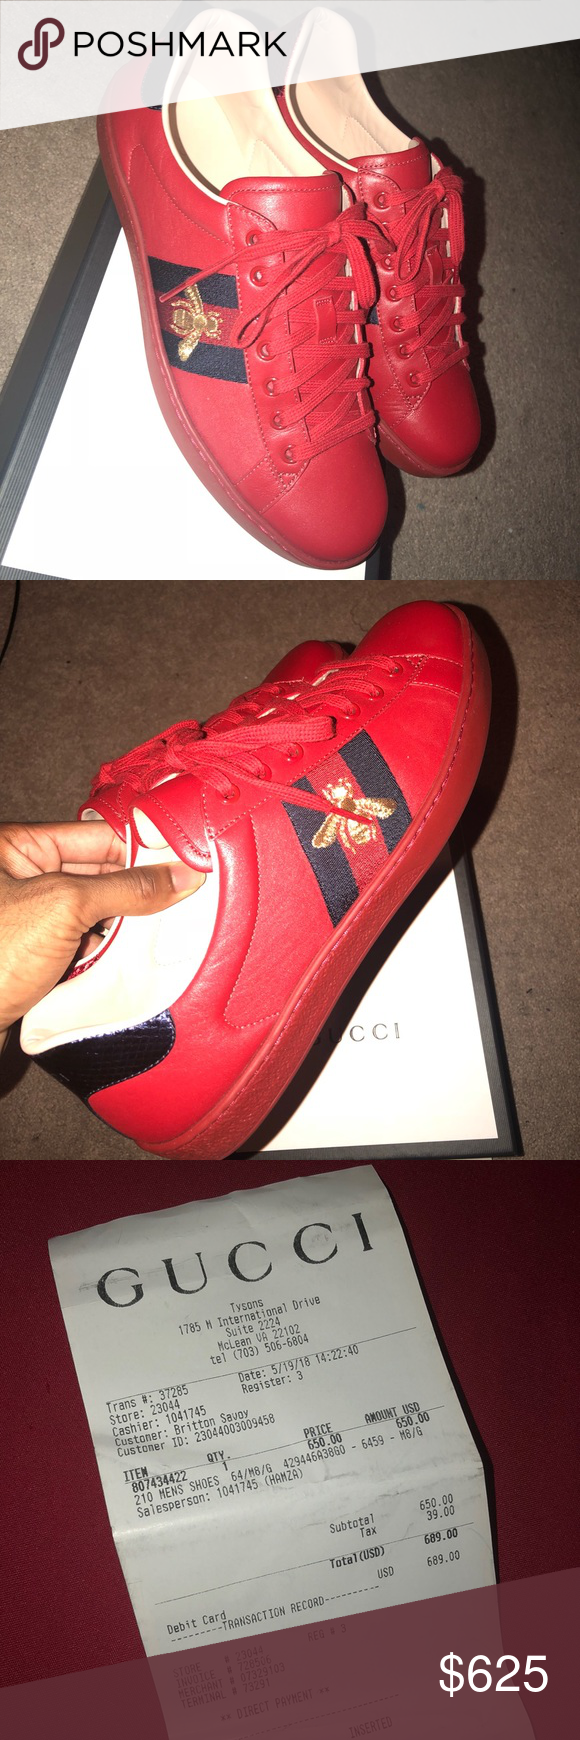 Authentic Gucci Sneakers worn once size